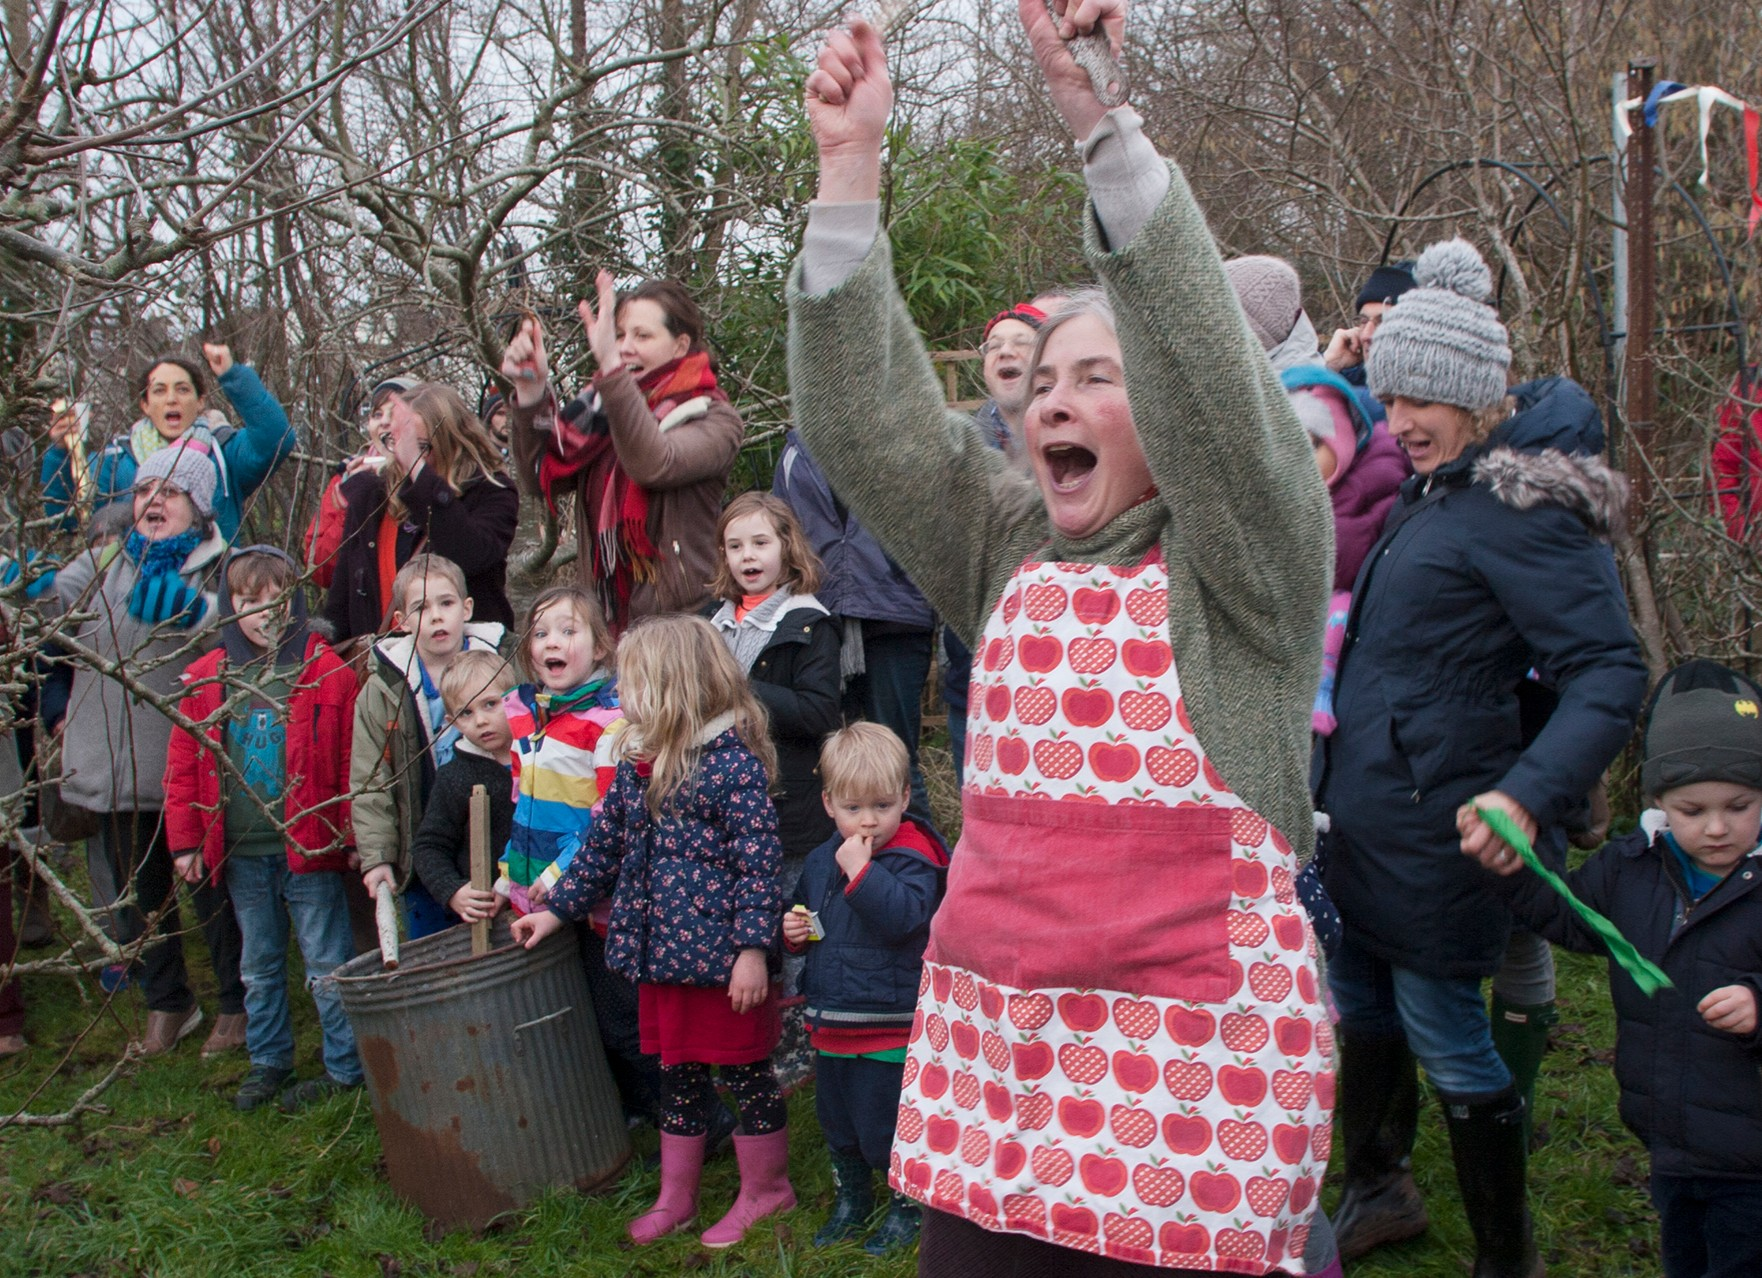 Horfield Organic Community Orchard to hold a Wassail